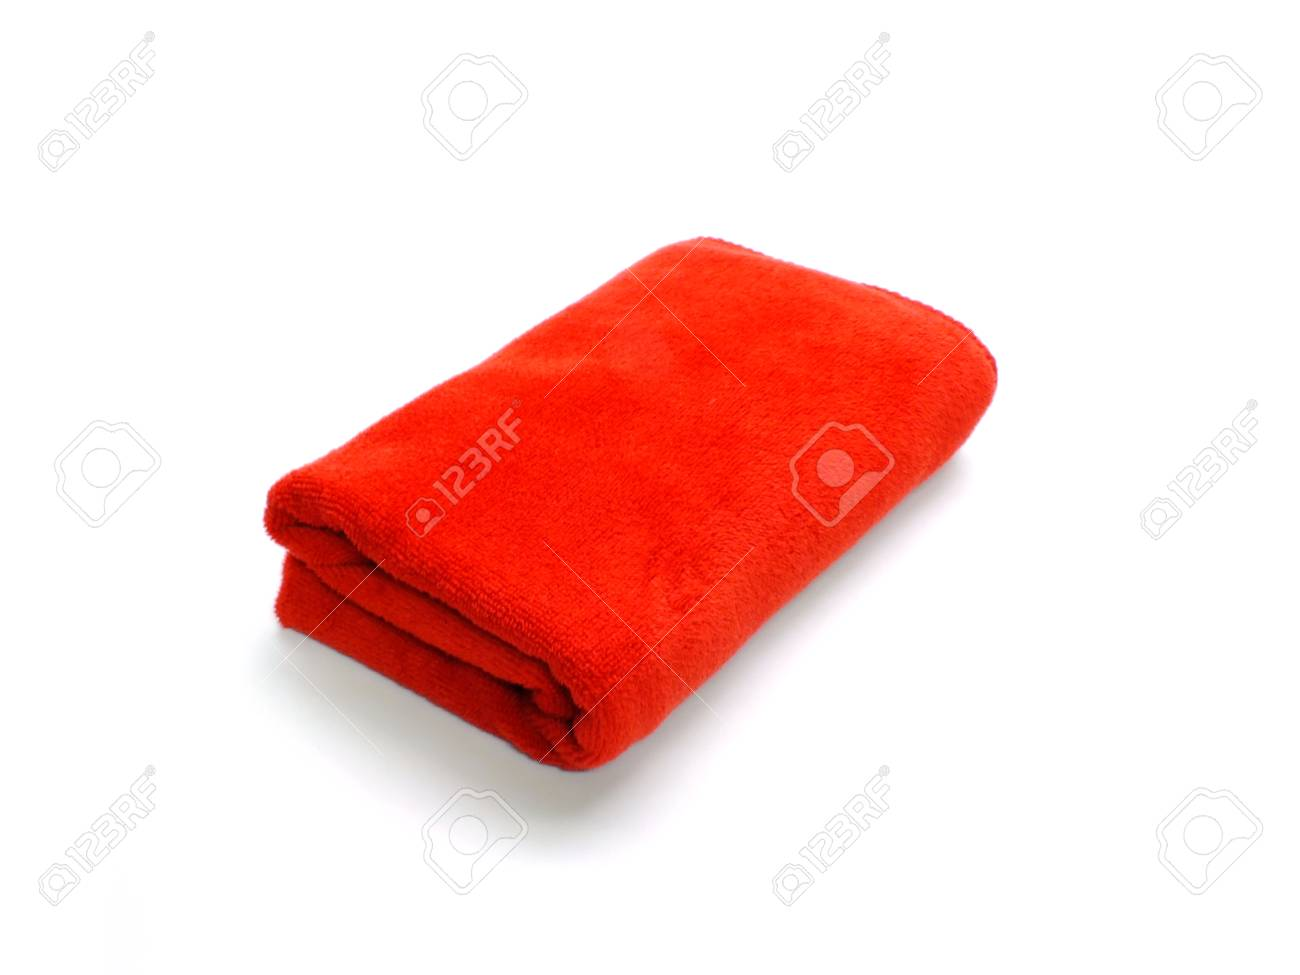 46c7cdce68bbb9 red microfiber cloth on a white background Stock Photo - 95985595